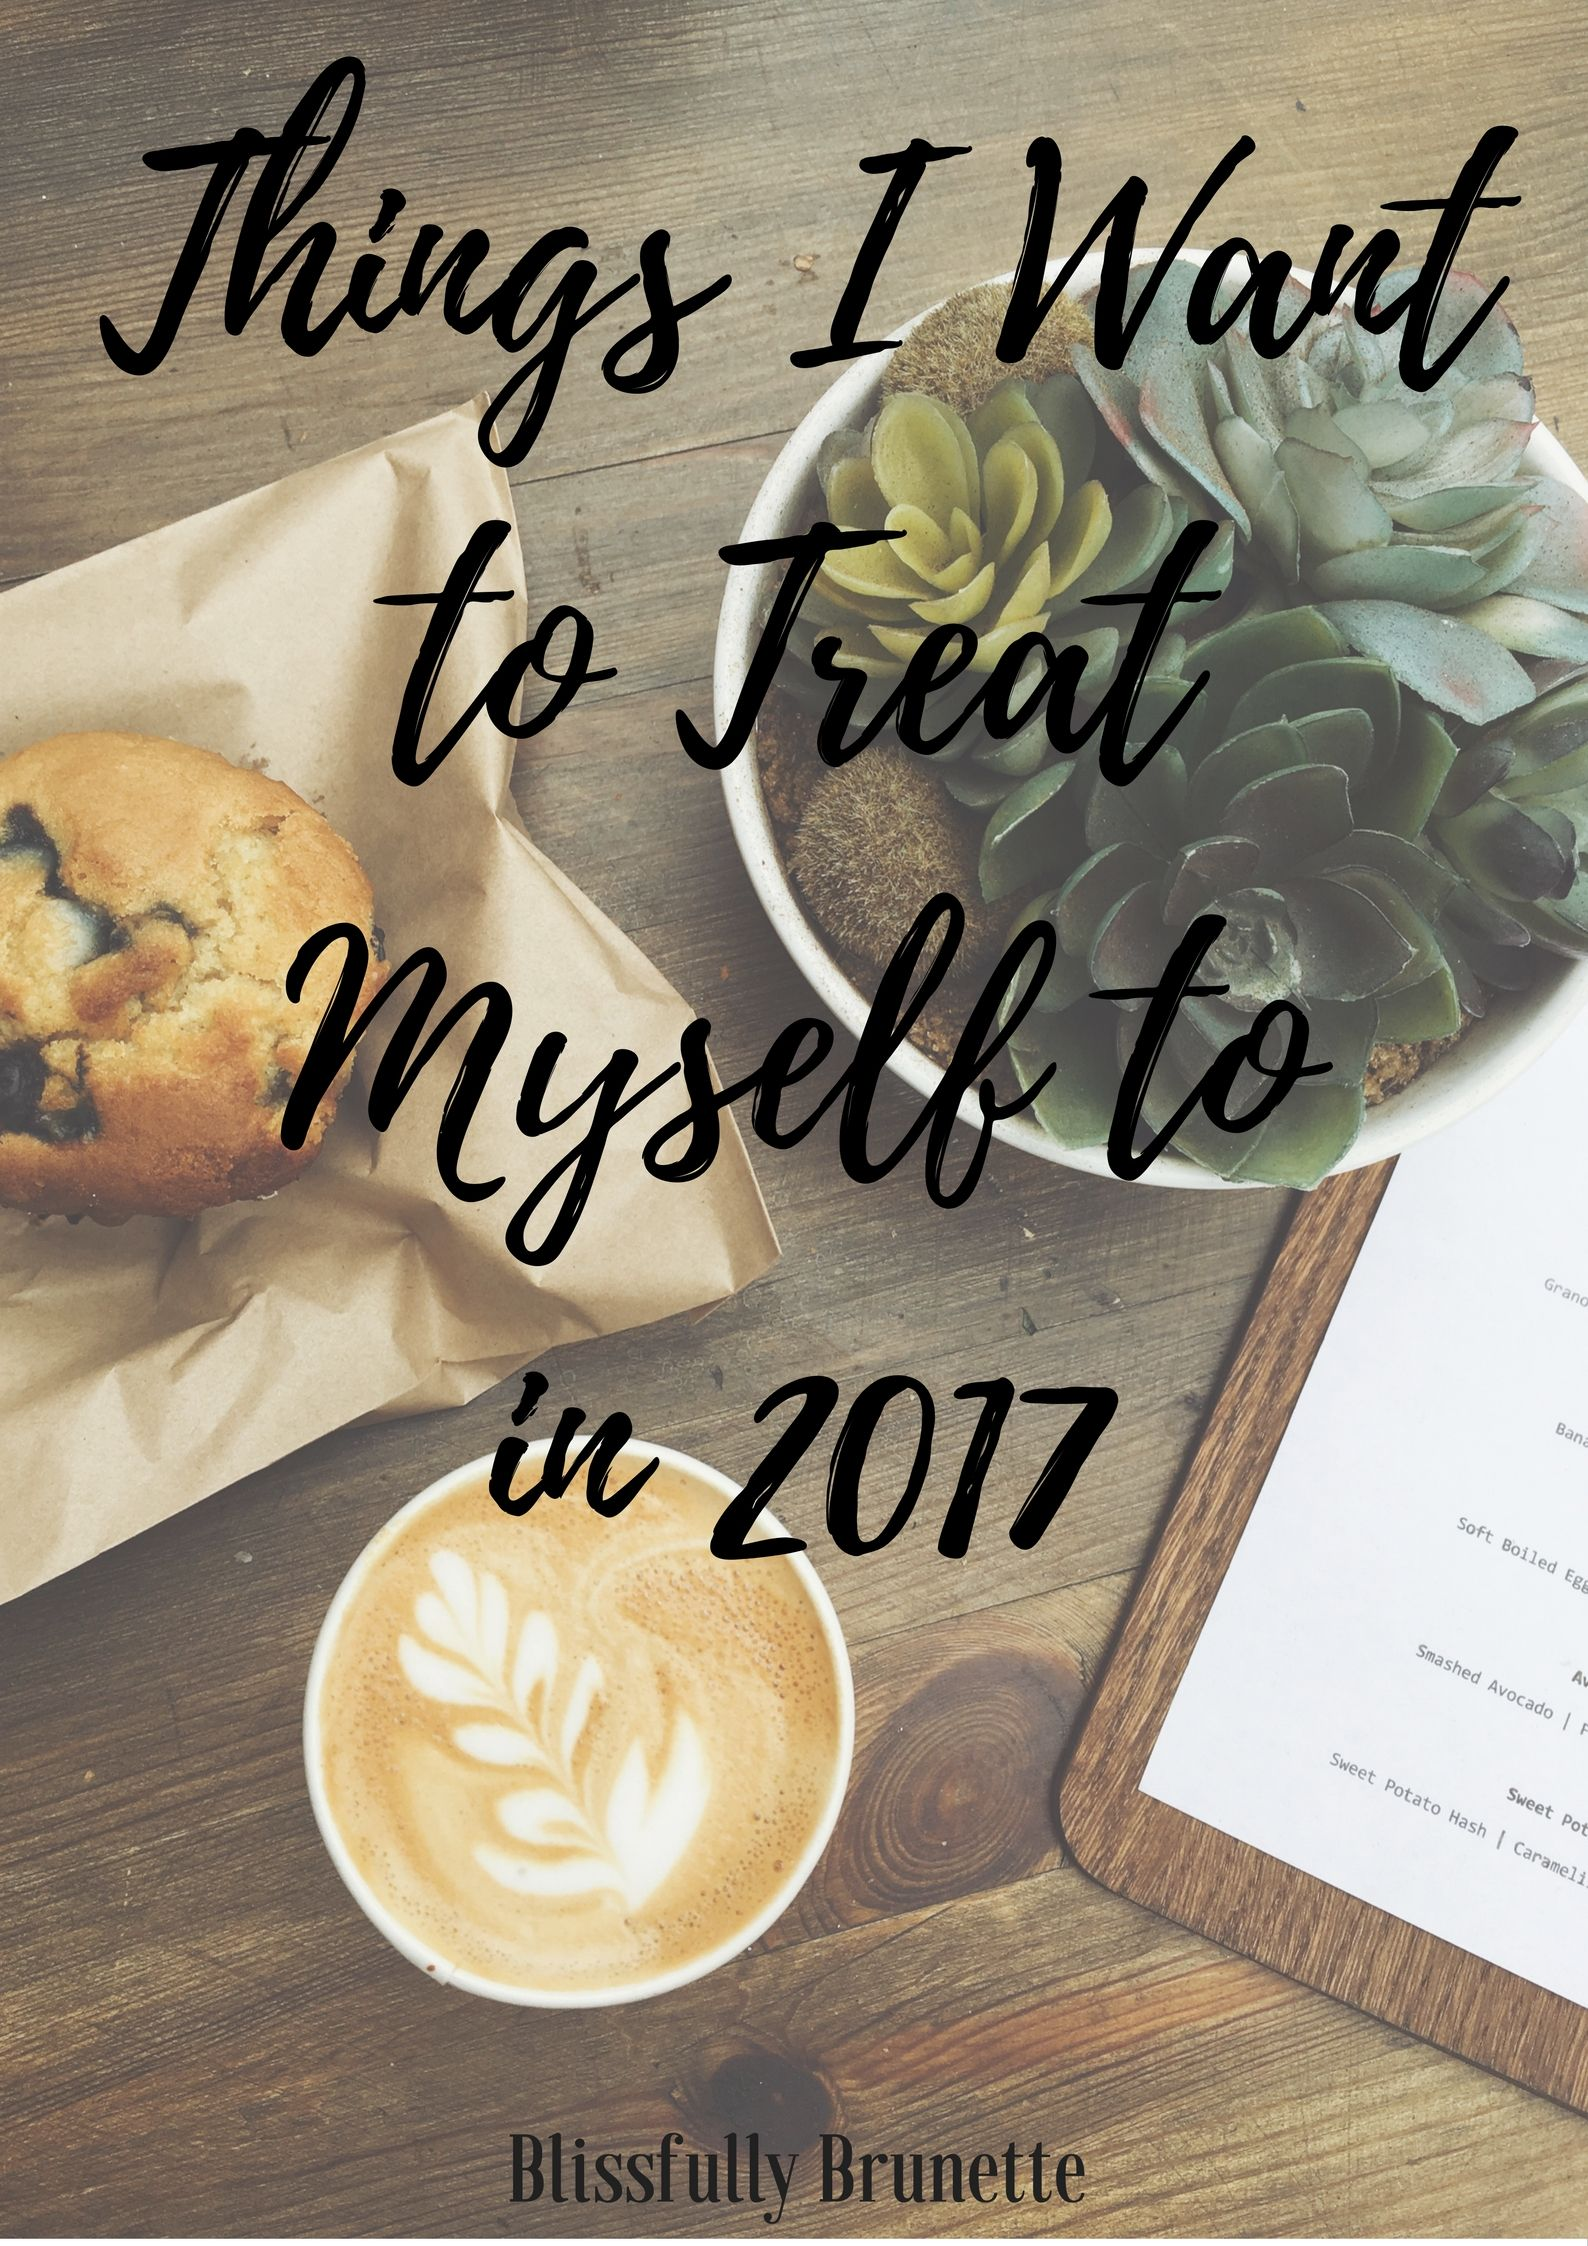 Things I want to treat myself to in 2017